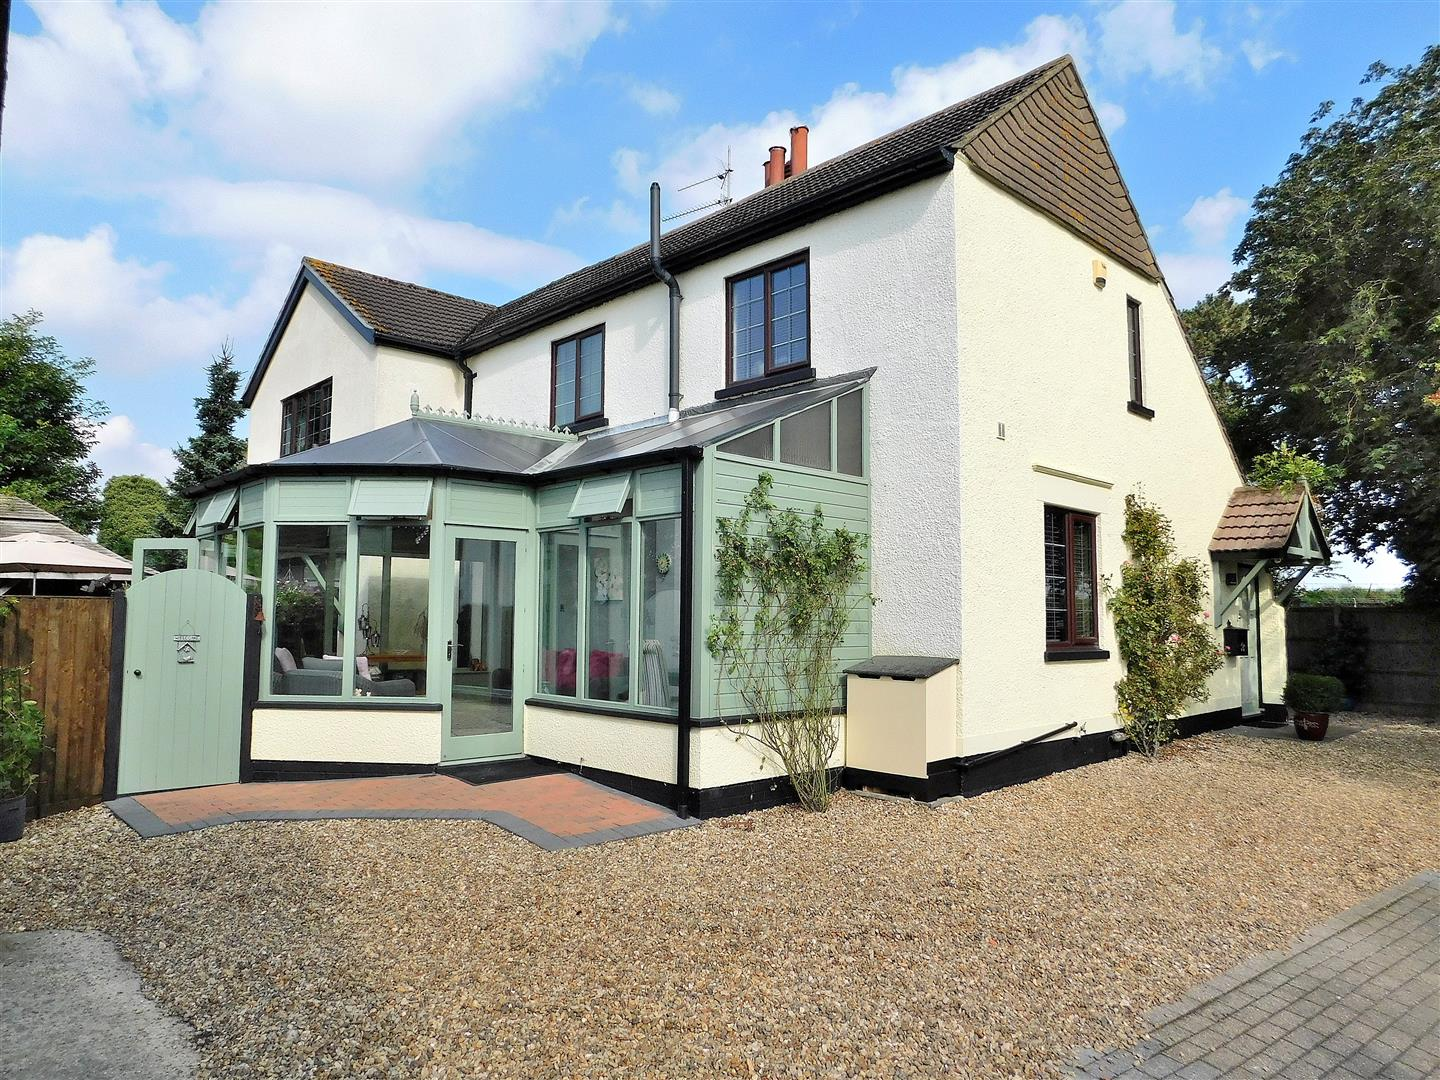 4 bed detached house for sale in Waterworks Road, King's Lynn - Property Image 1